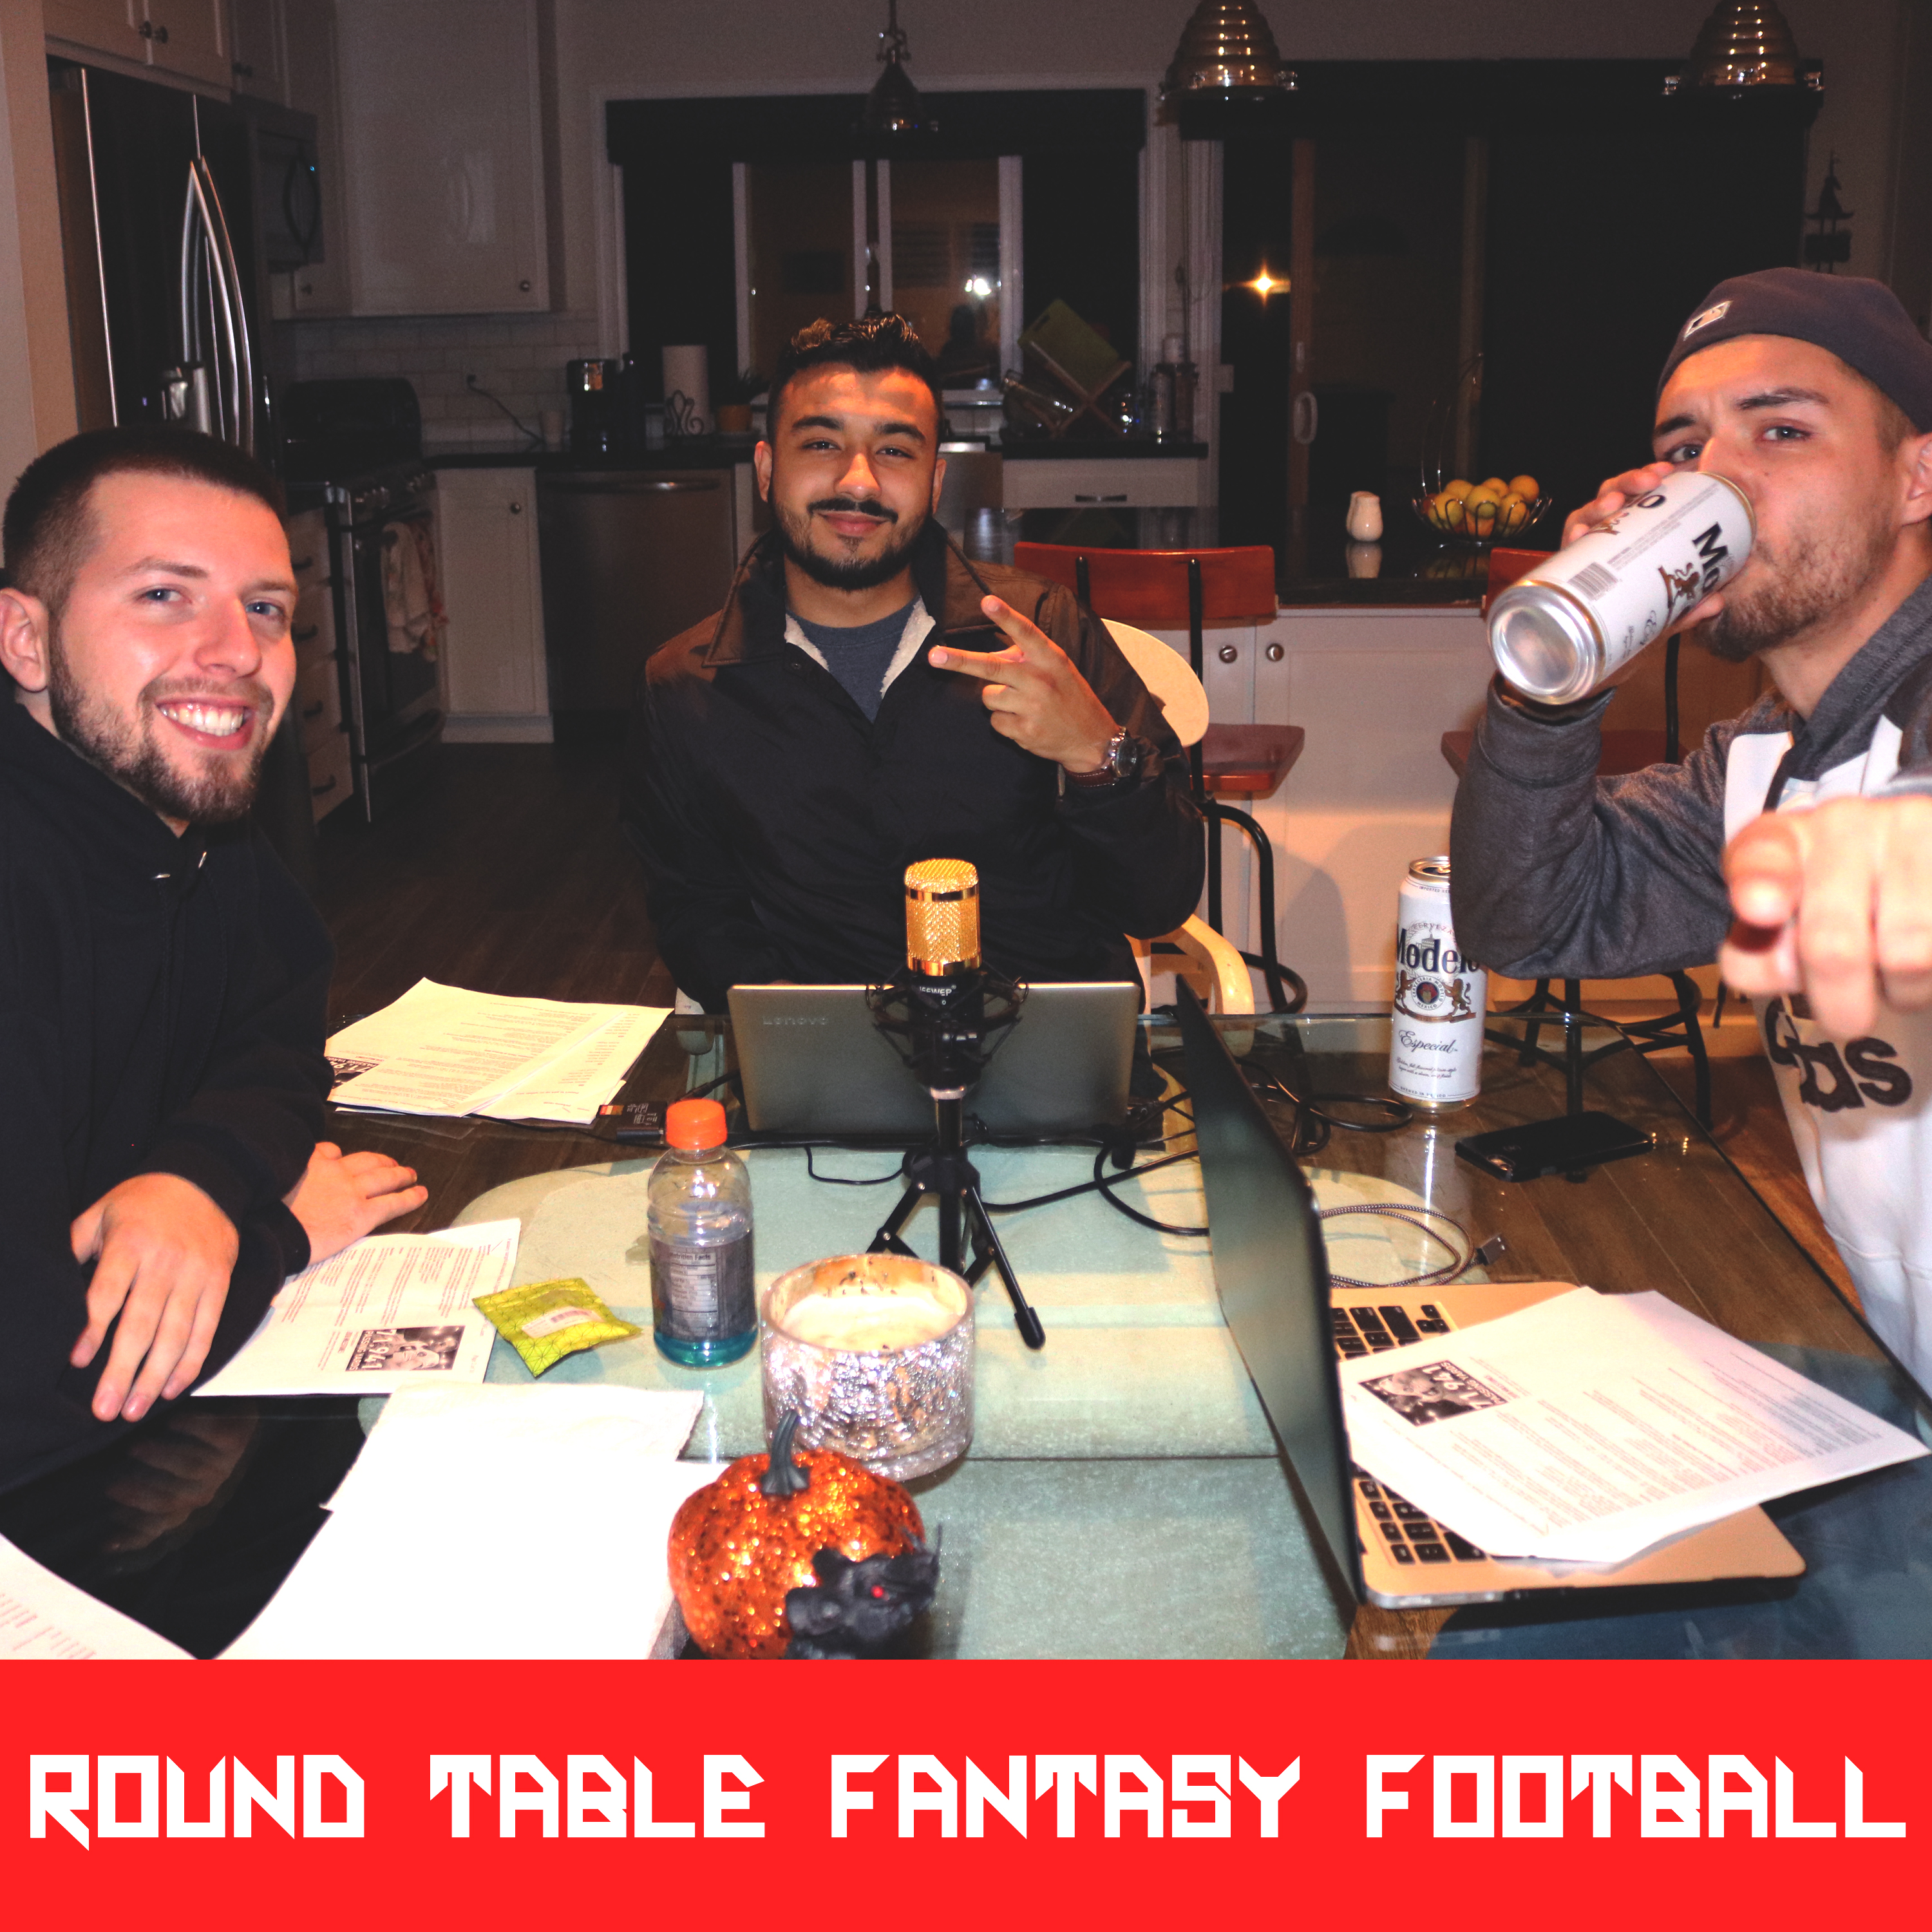 Round Table Podcast.Round Table Fantasy Football Podcast Listen Free On Castbox